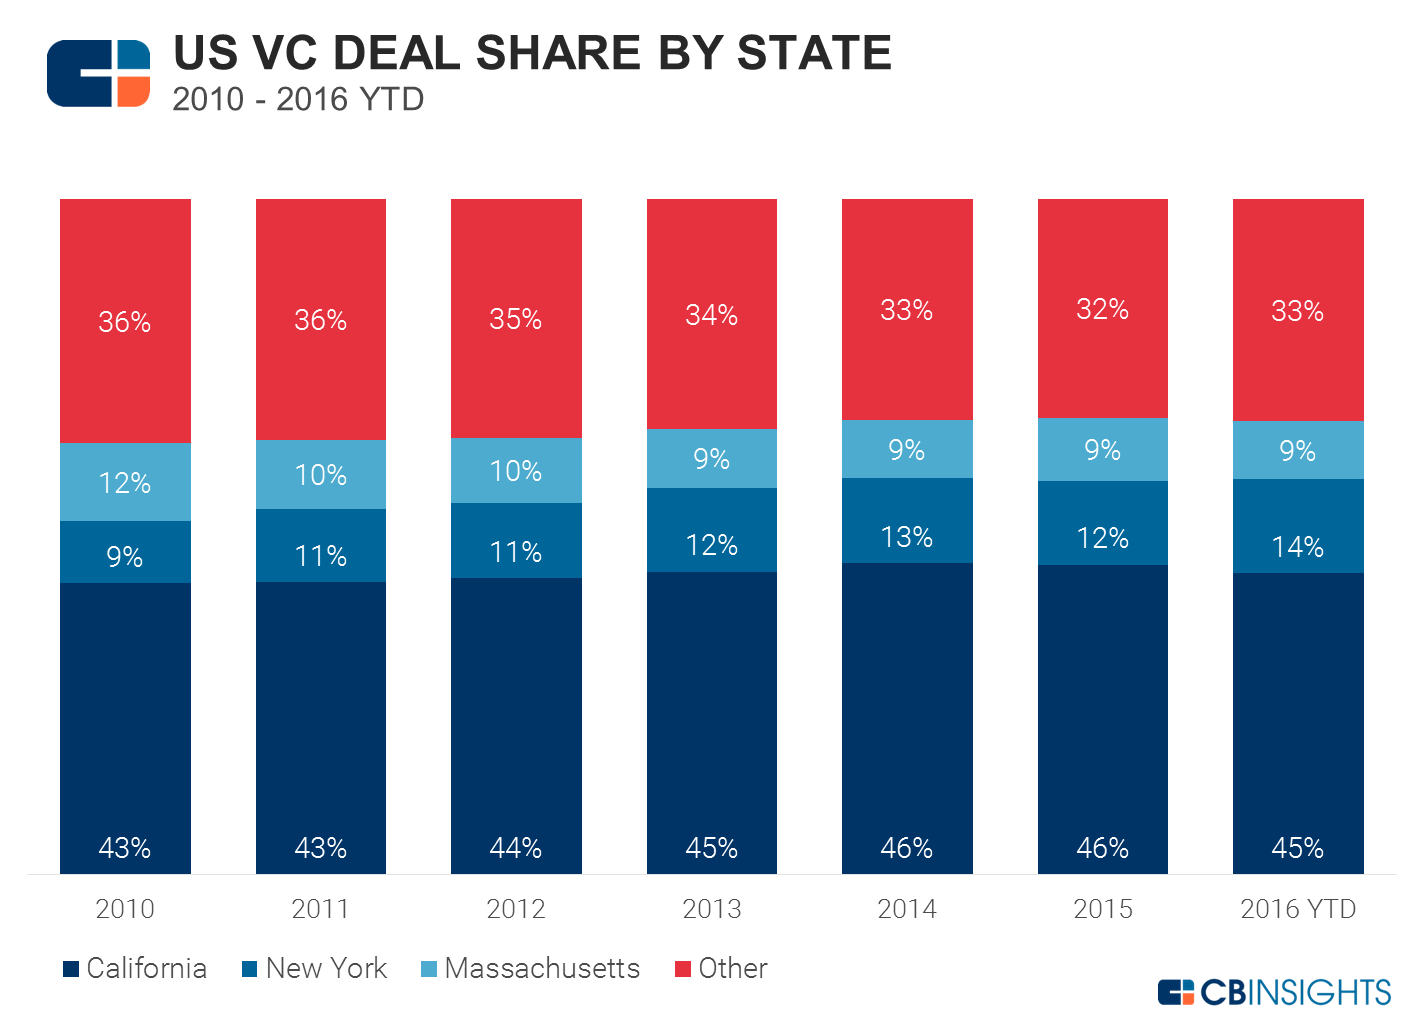 VC deals by state